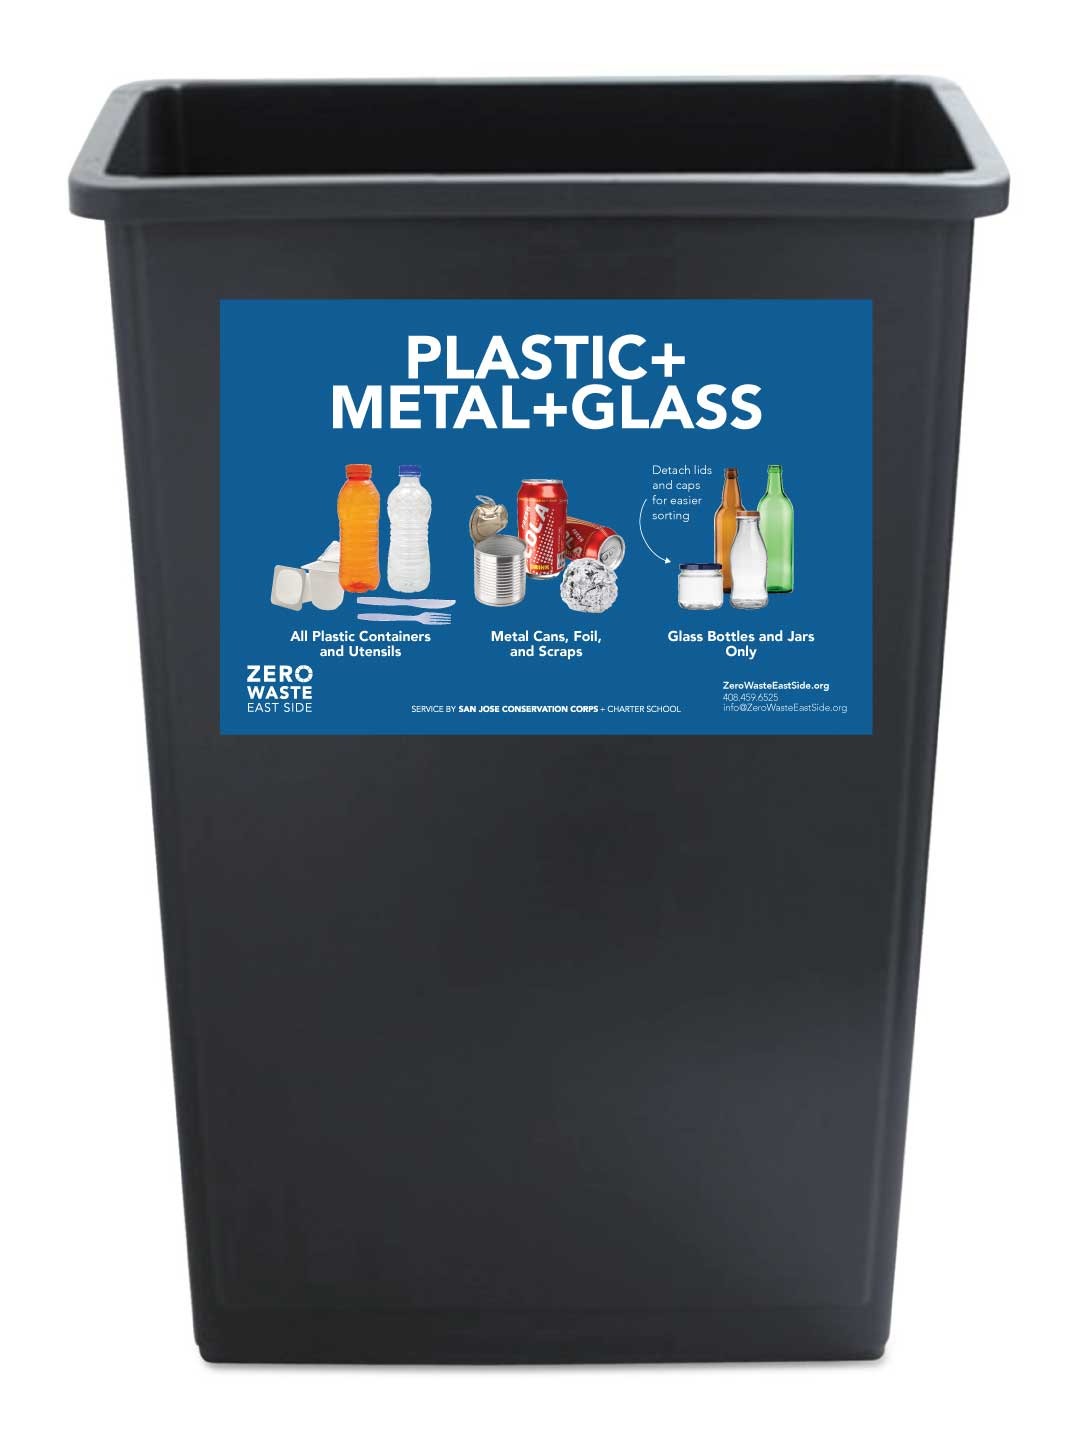 Receptacle Label for Plastic + Metal + Glass